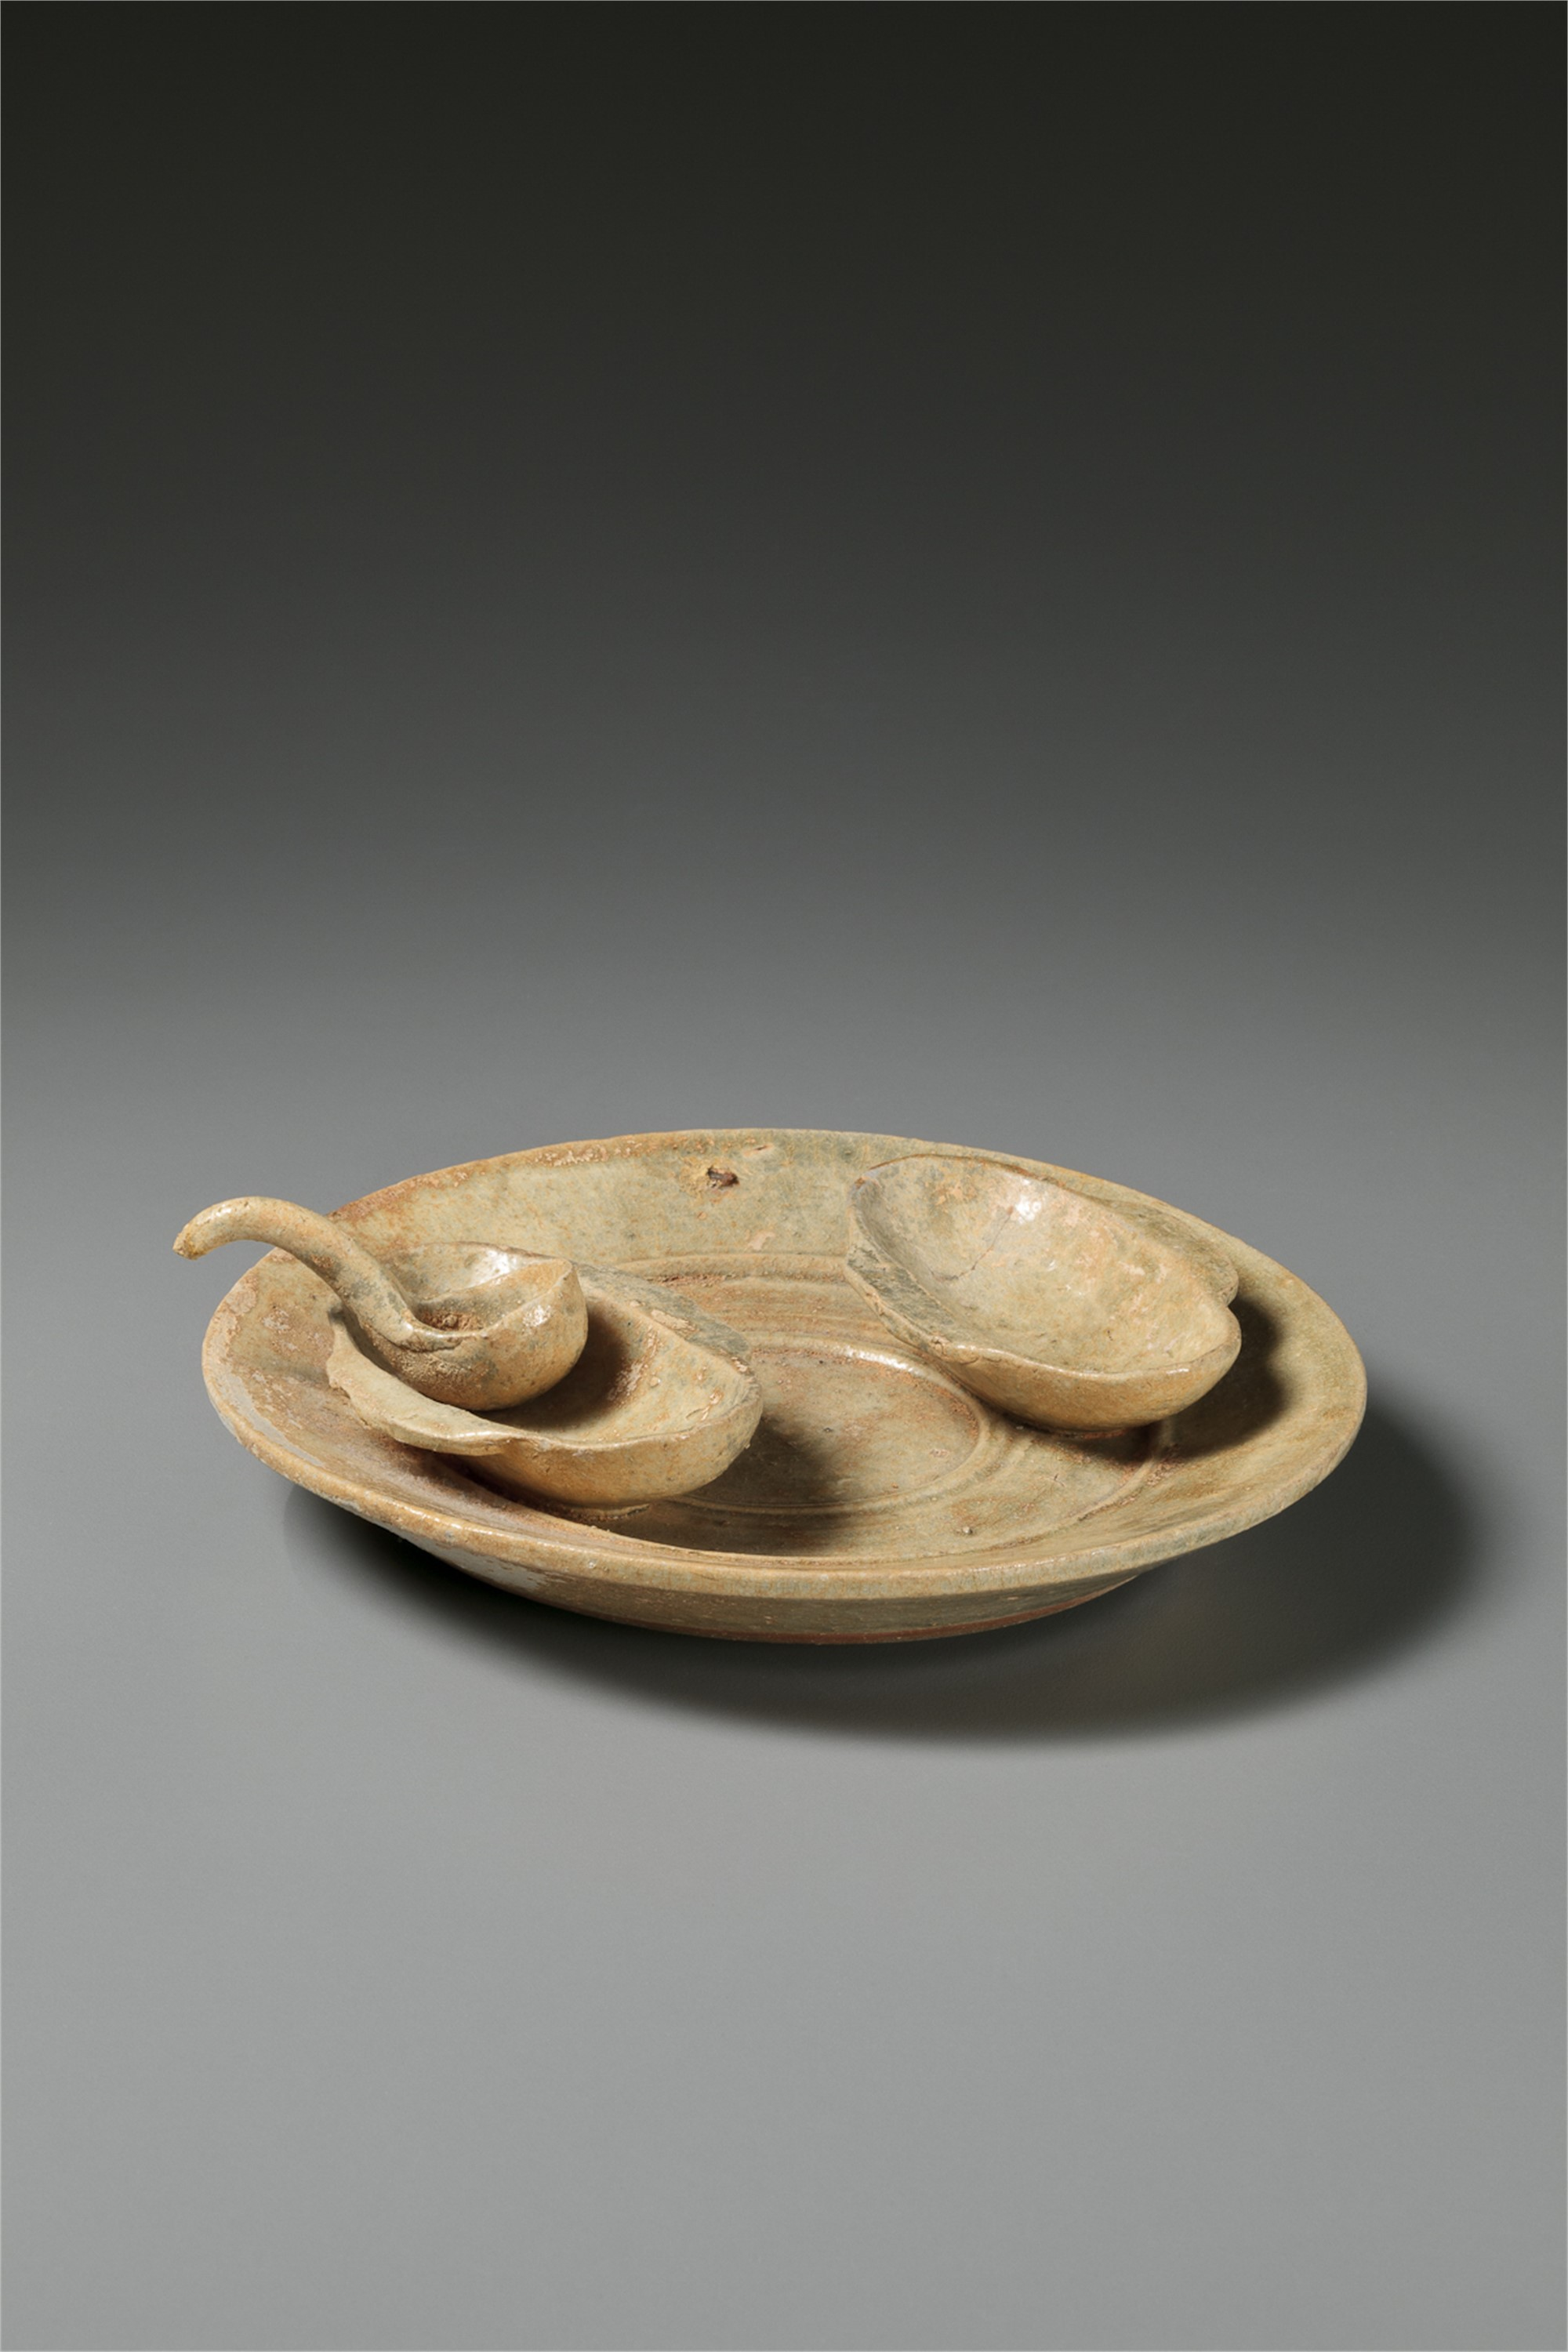 DISH WITH TWO EAR SHAPED CUPS AND A SMALL LADLE